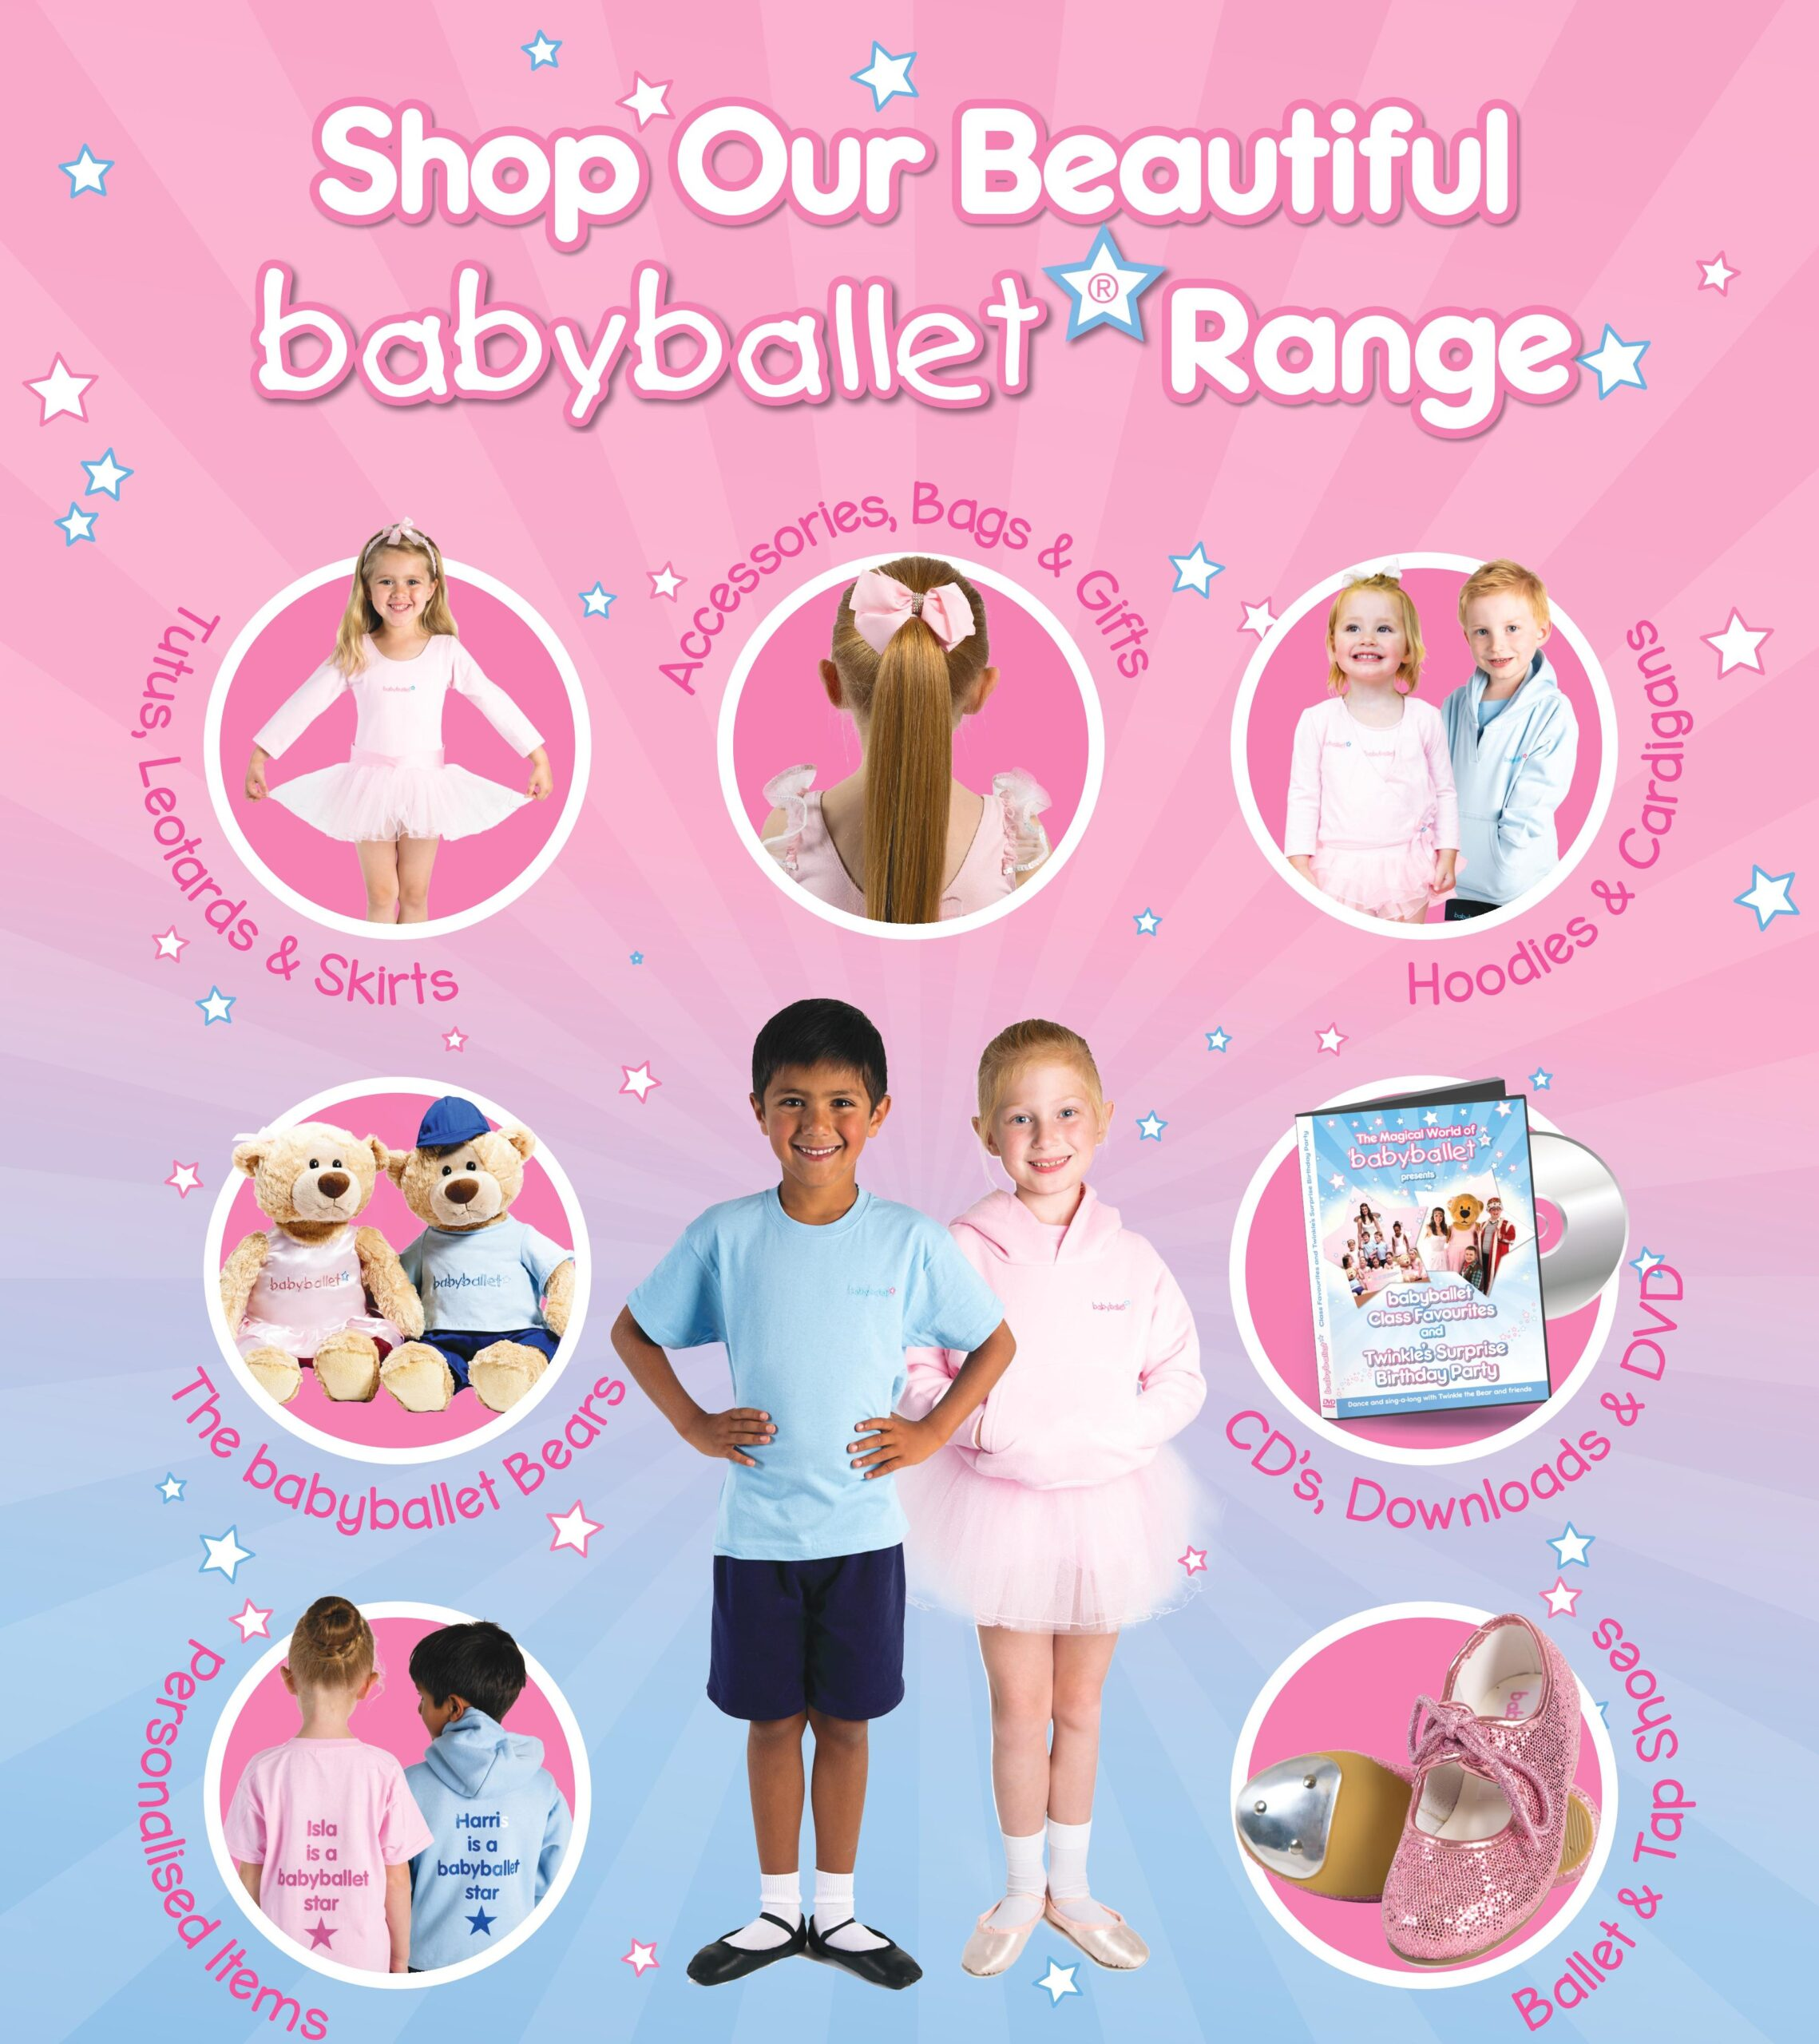 babyballet uniform for little dancers to wear. Boys and girls dancewear and shoes